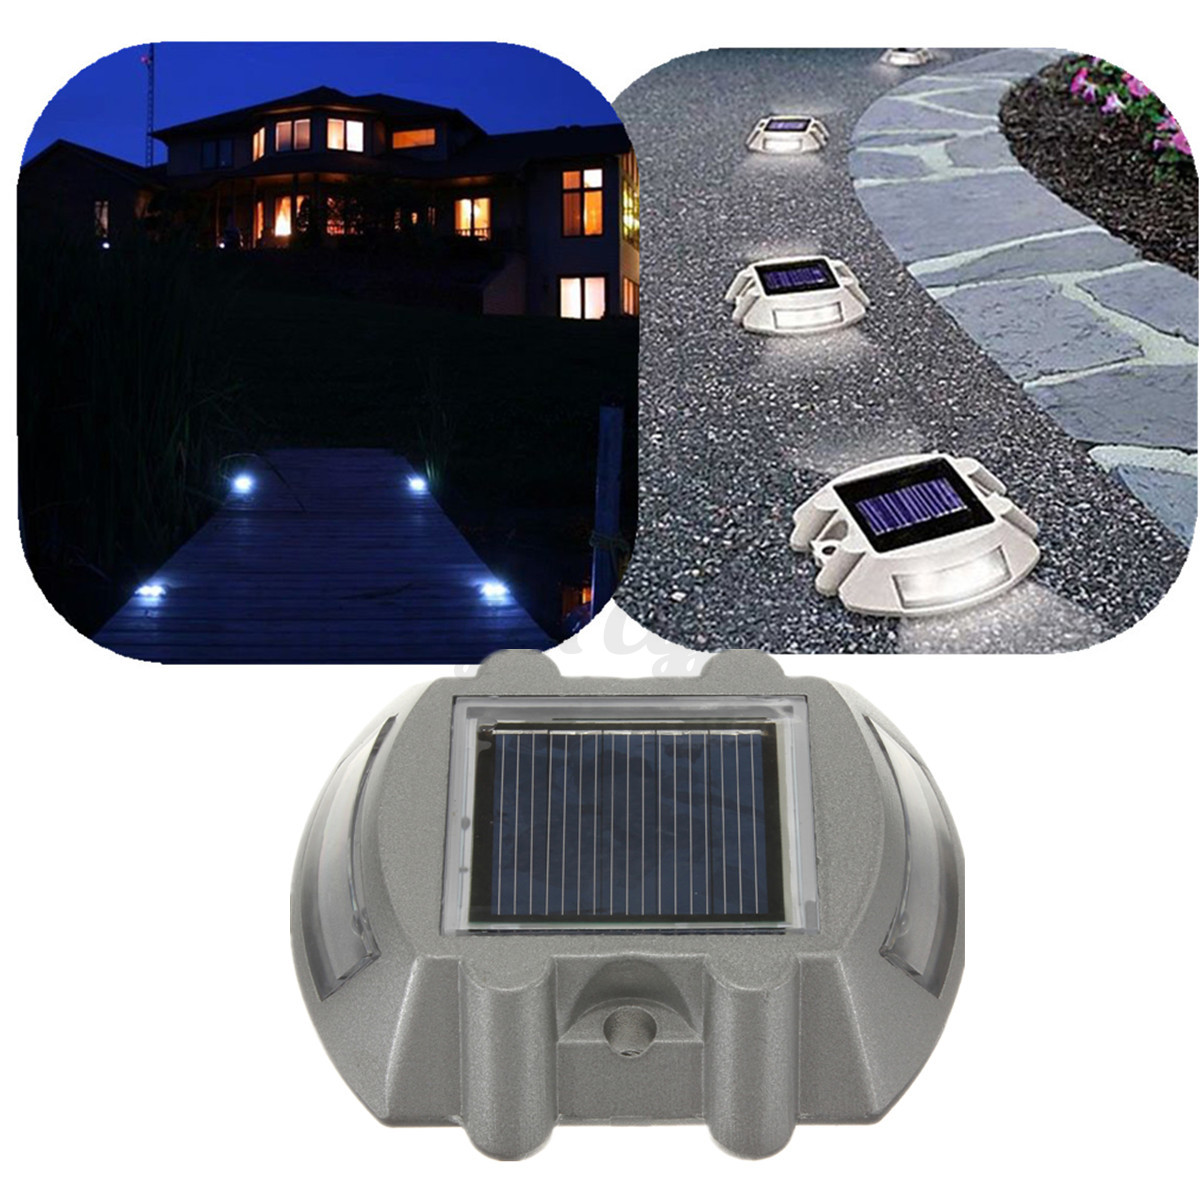 Solar sun powered 6 led road driveway pathway path light for Outdoor led path lights